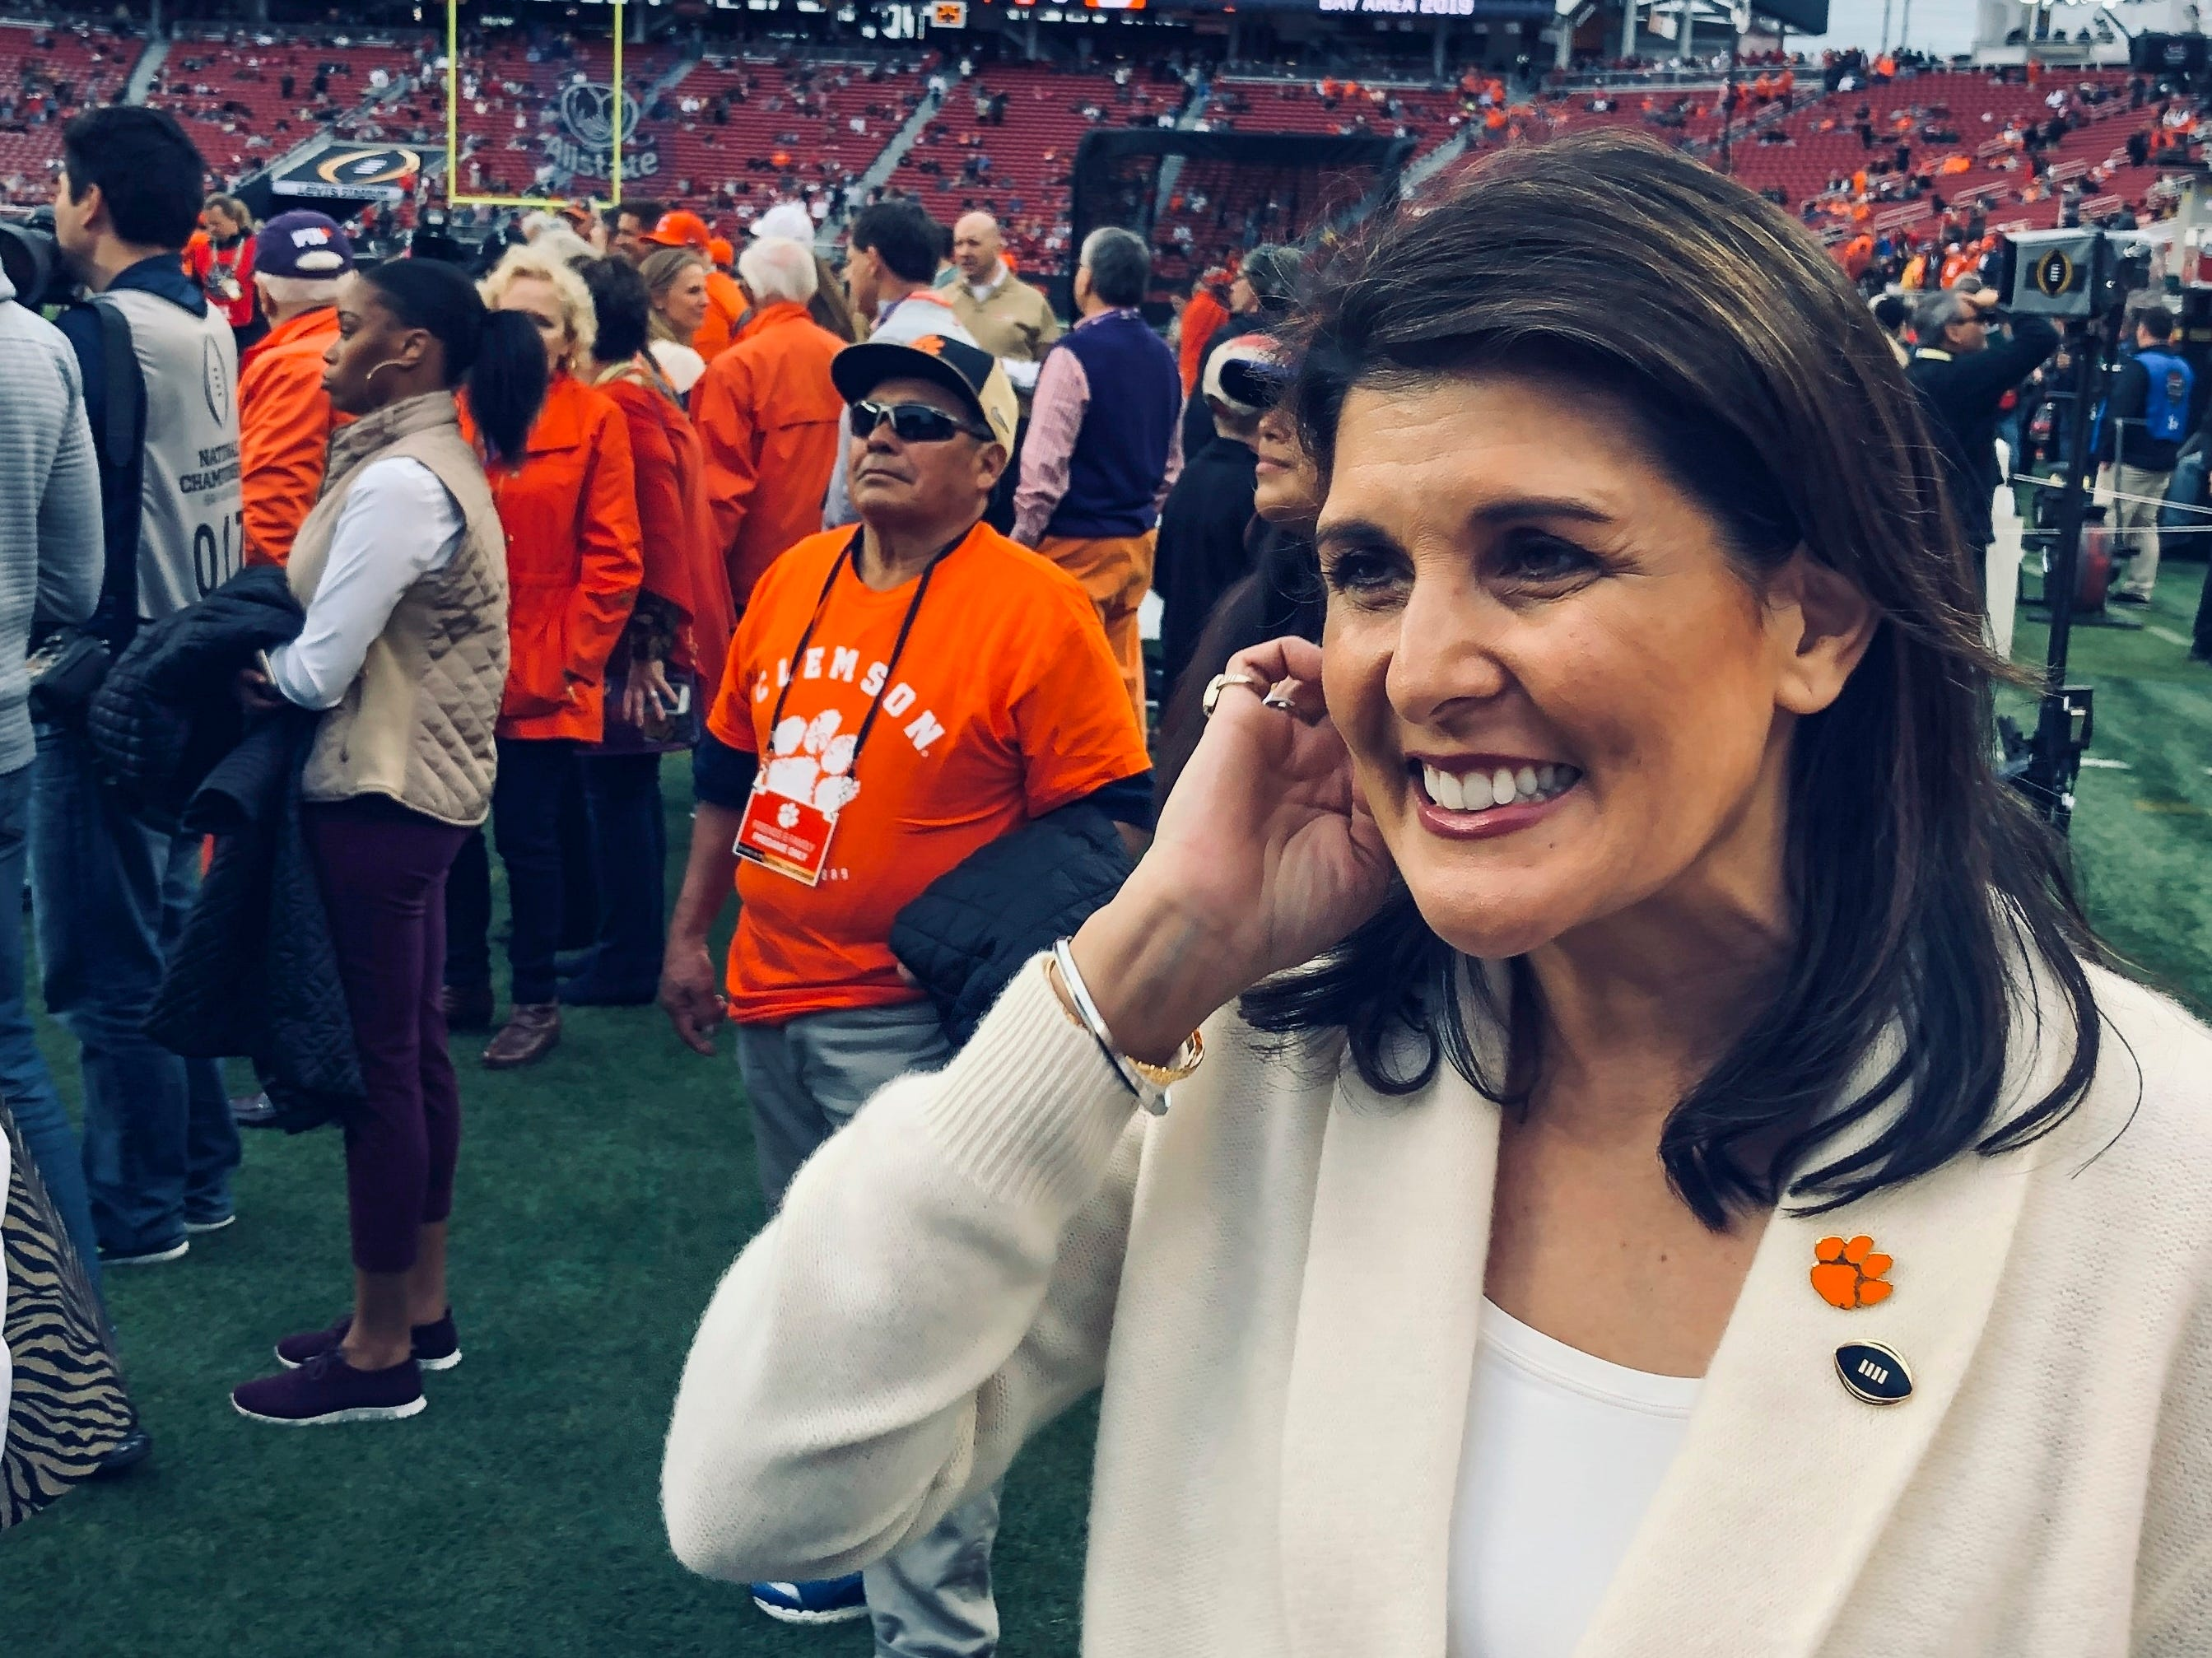 Former United Nations Ambassador Nikki Haley watches warm up on the sideline before the NCAA college football playoff championship game between Alabama and Clemson Monday, Jan. 7, 2019, in Santa Clara, Calif. (AP Photo/Paul Newberry)